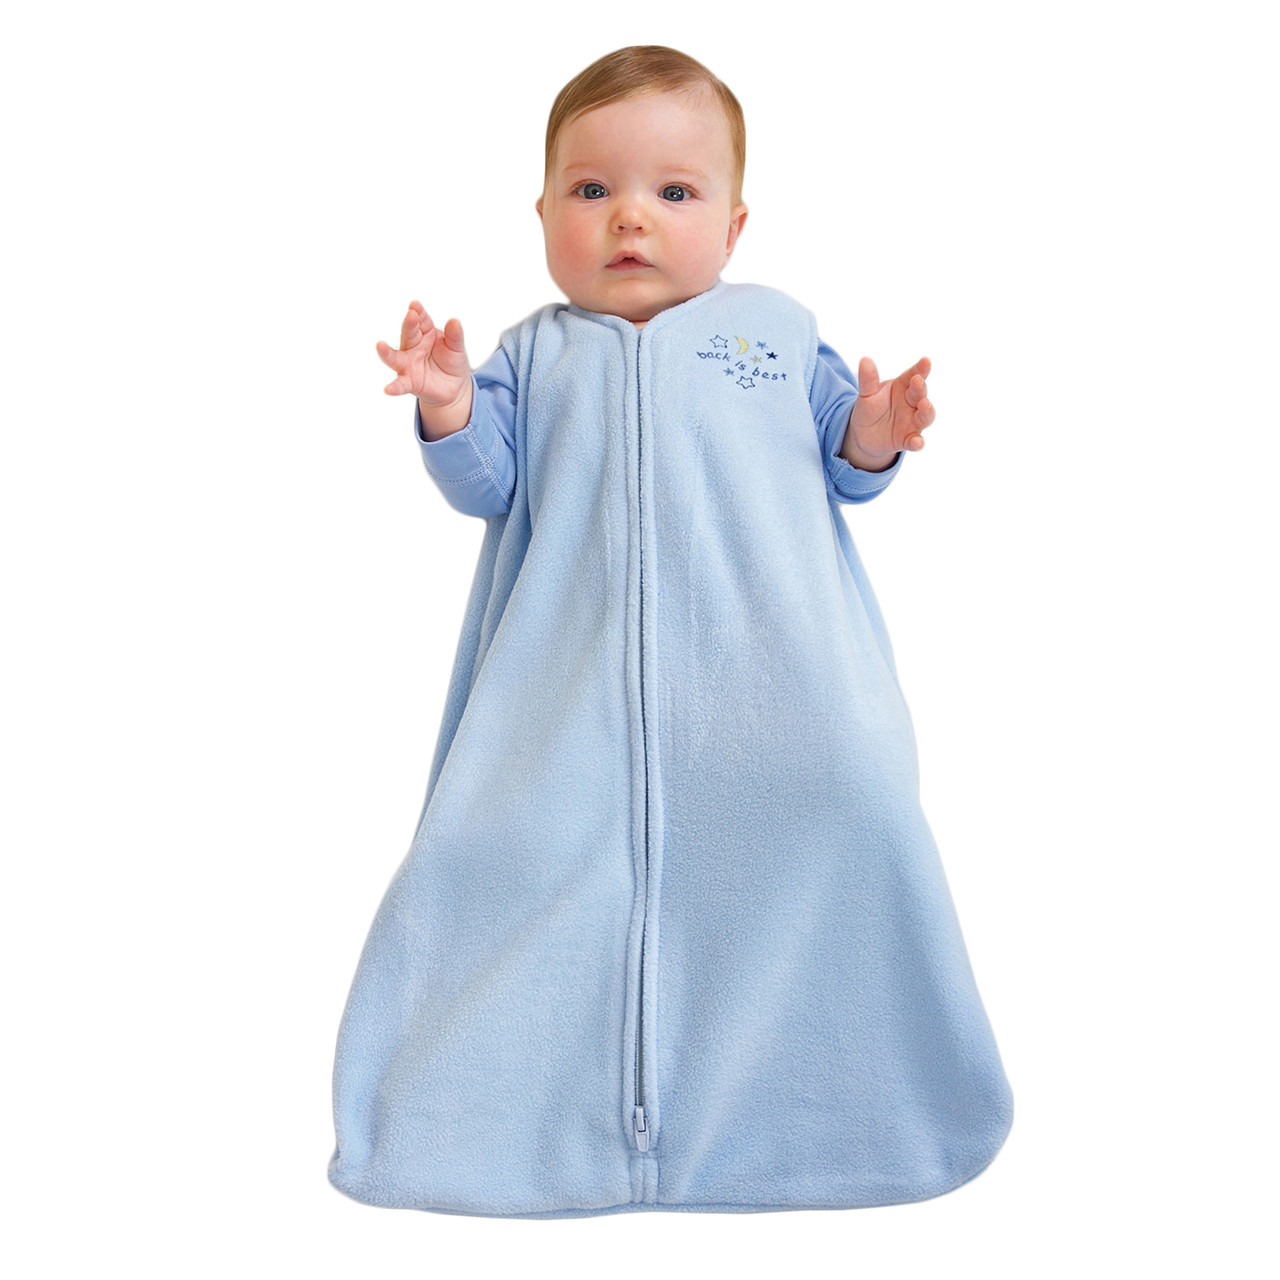 Best Baby Sleep Sacks: Infant sleep sacks are like a combination of dress and blanket. They start out like a sleeveless shirt on the top and flow out like a dress at the bottom but they are completely enclosed so that your baby is secure.